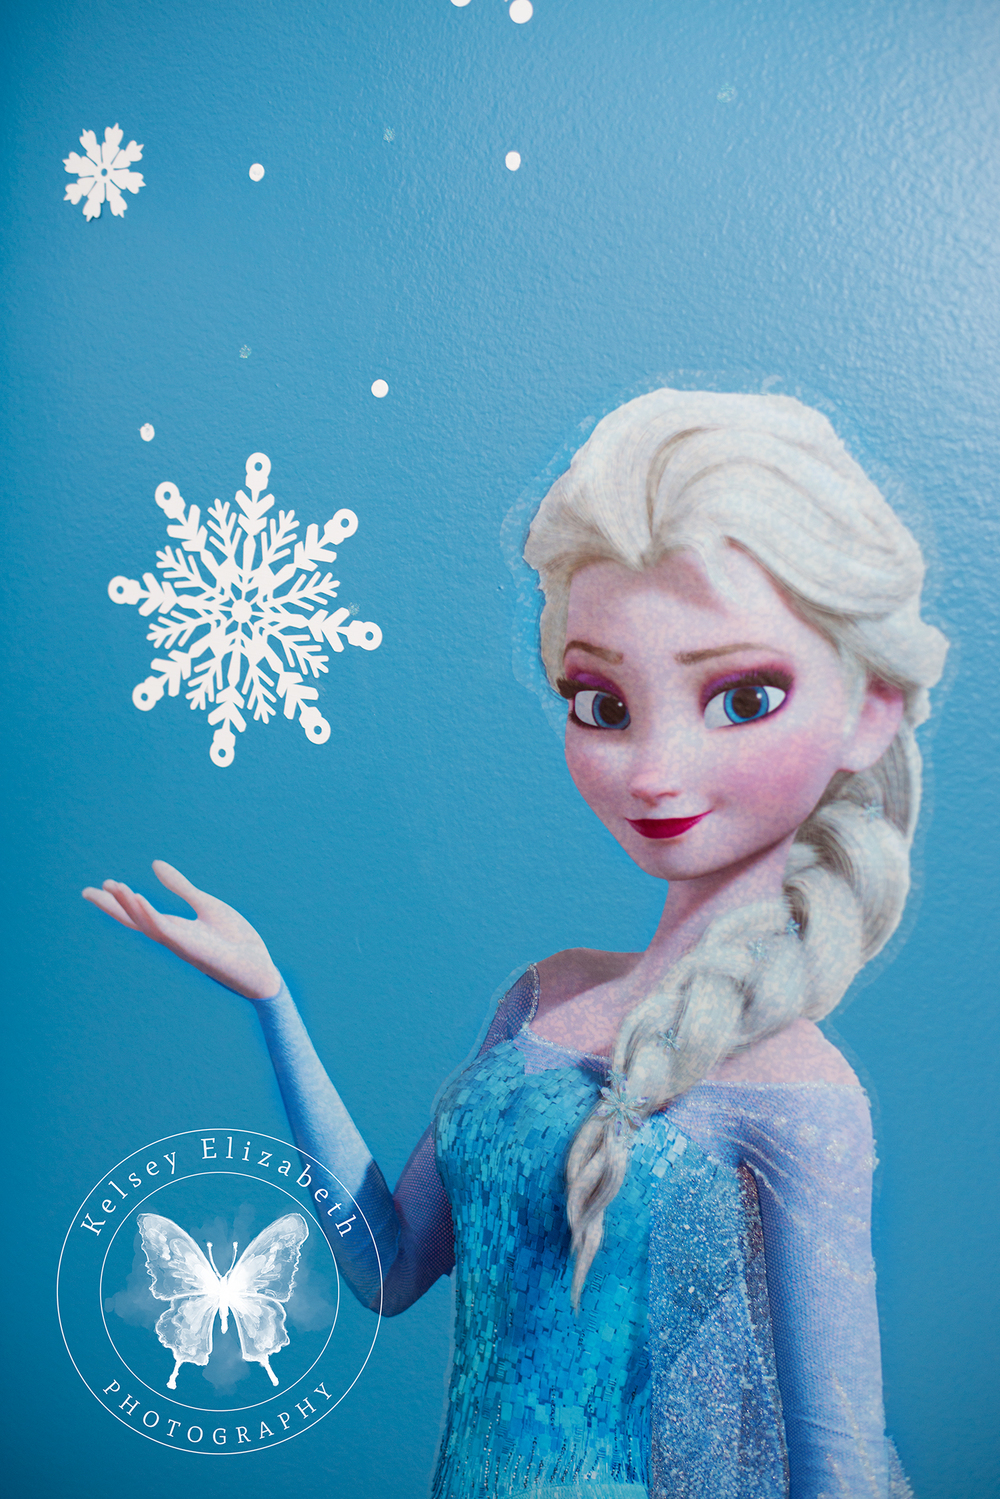 Frozen Bedroom; Disney Bedroom; Children's Bedroom; Elsa Bedroom; Winter Snowflakes